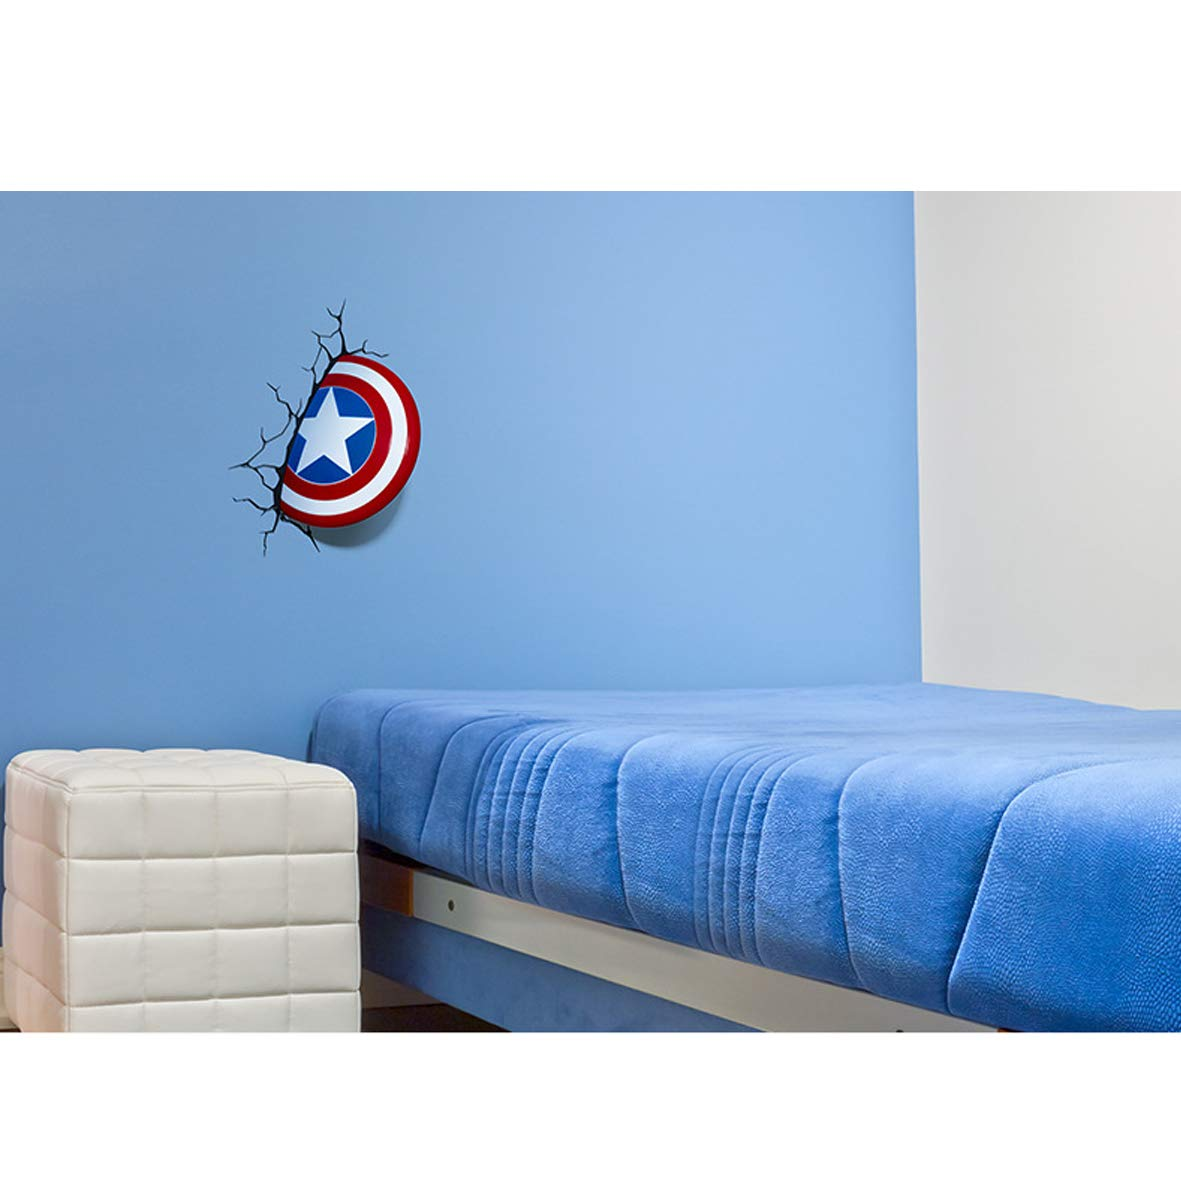 Amazon.com: Miracle Avengers Lámpara de pared Iron Man Hulk ...